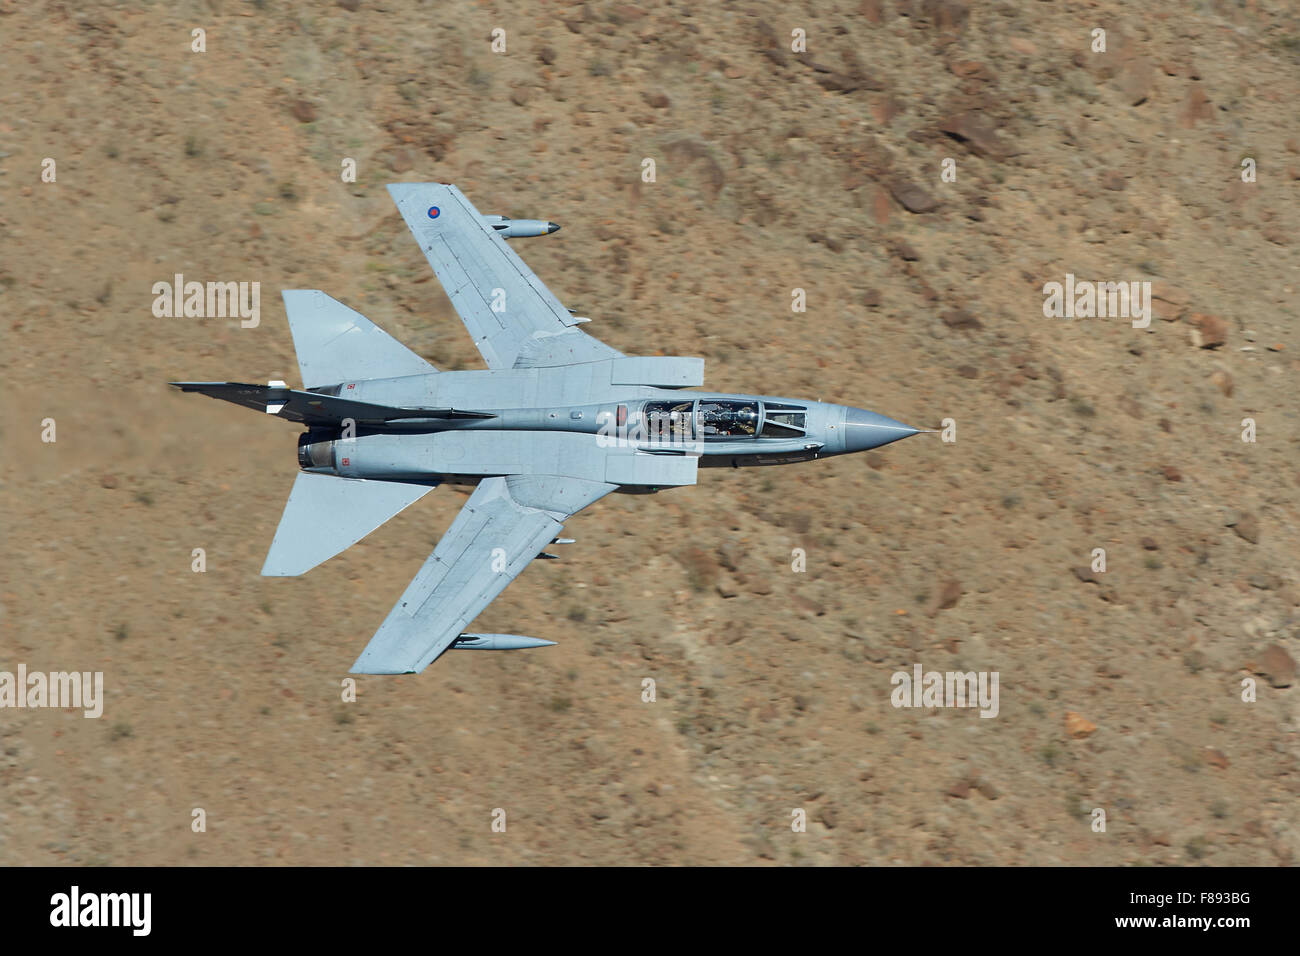 Royal Air Force Tornado GR4 Jet Fighter Flying At Very Low Level Through A Desert Valley. Stock Photo